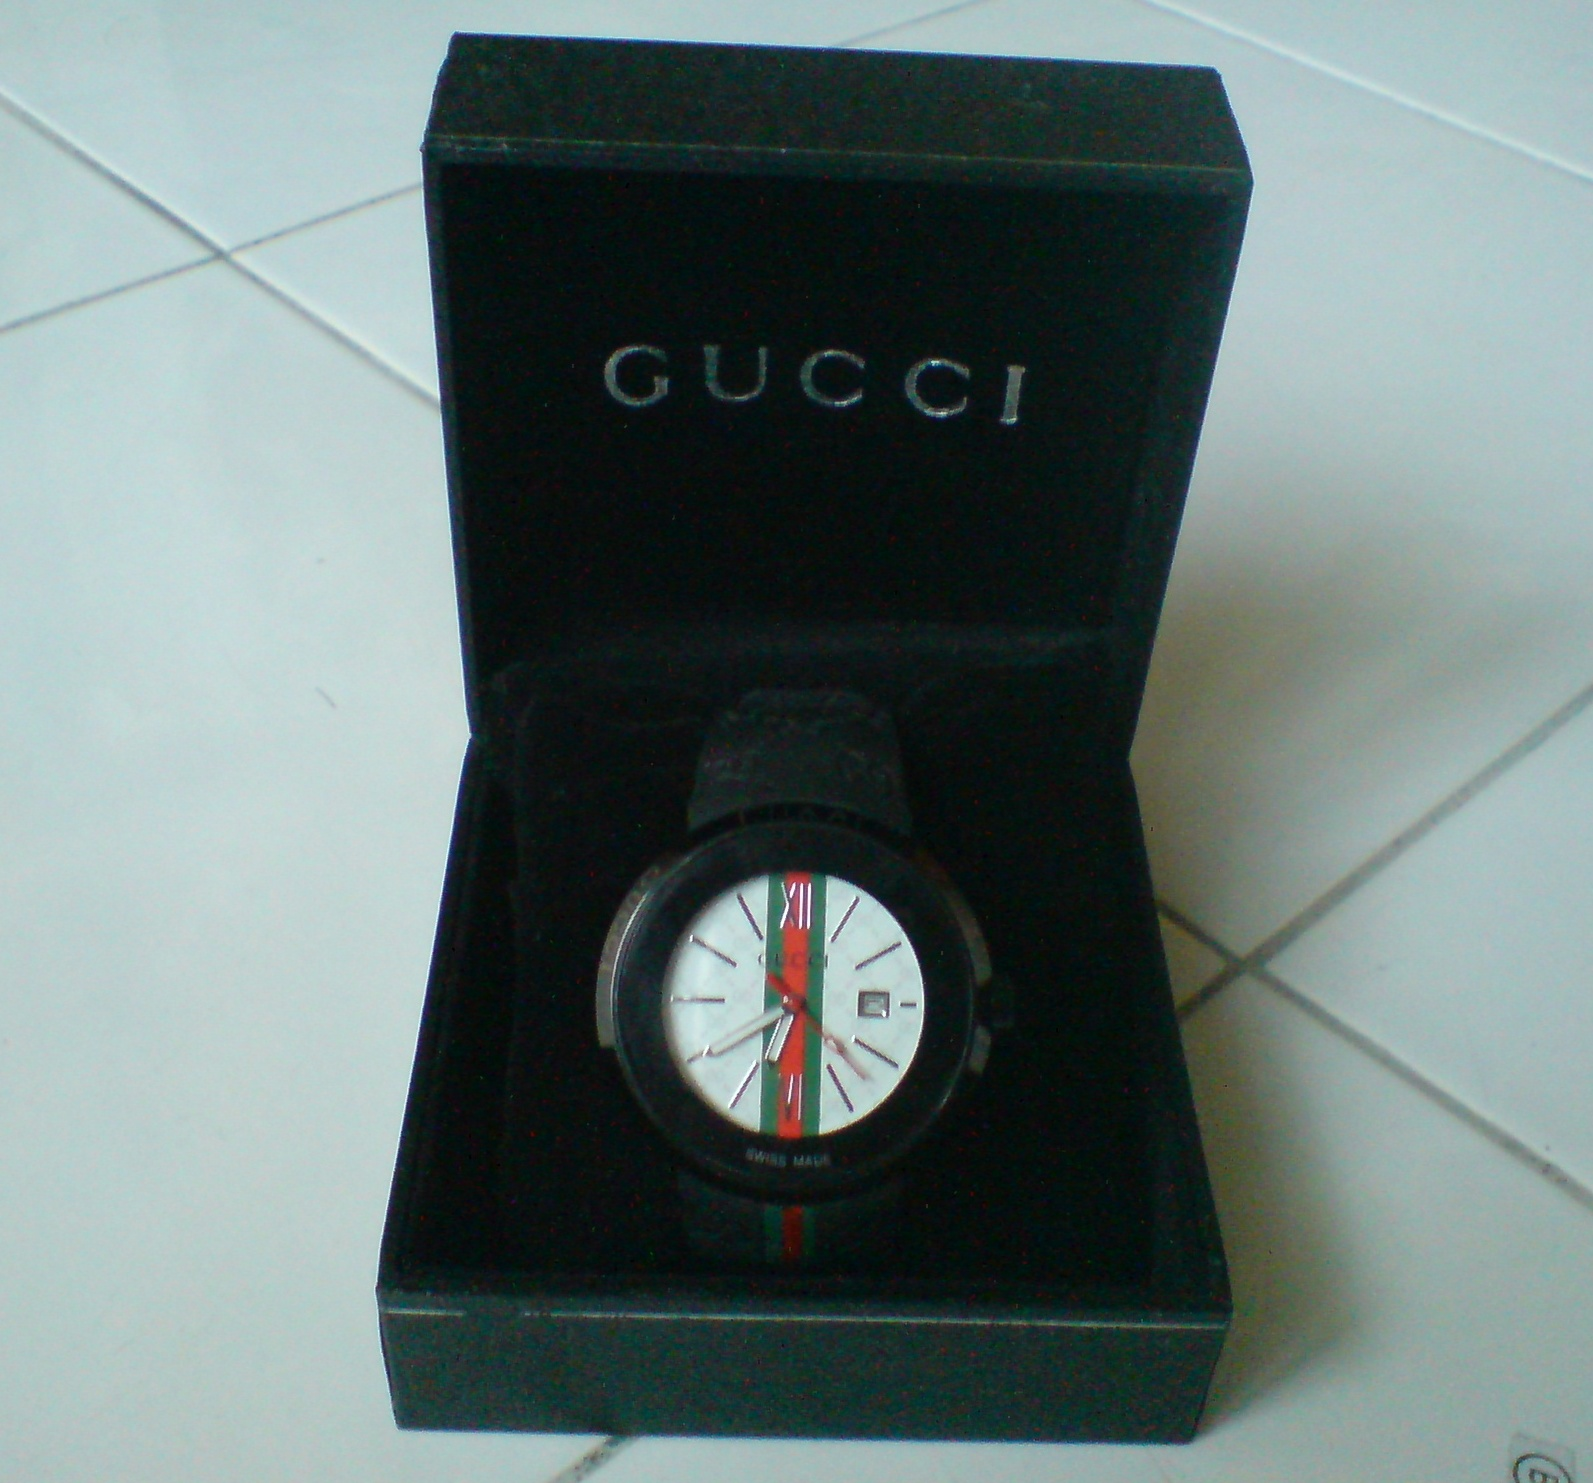 gucci 1142. gucci watch (sold out) 1142 r